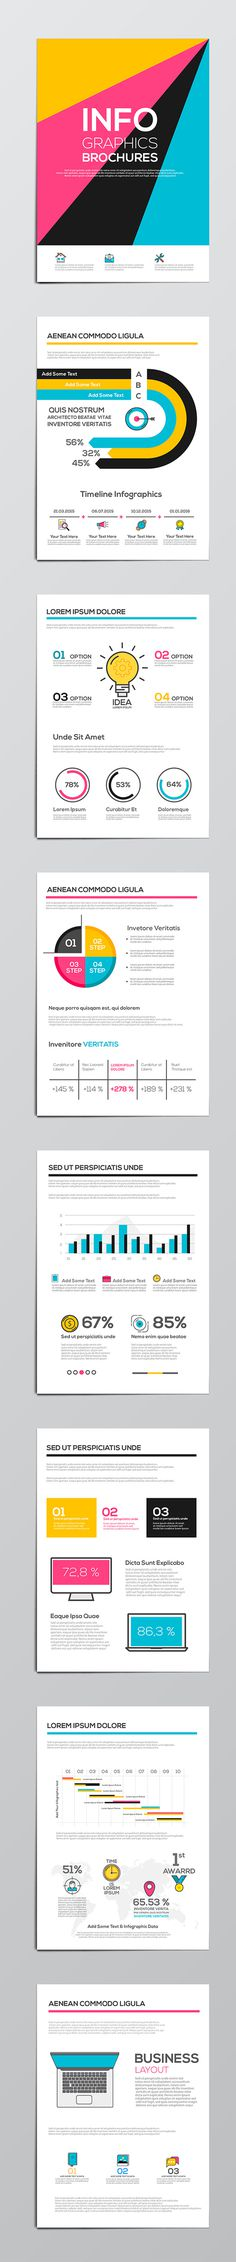 Fun infographics and colors